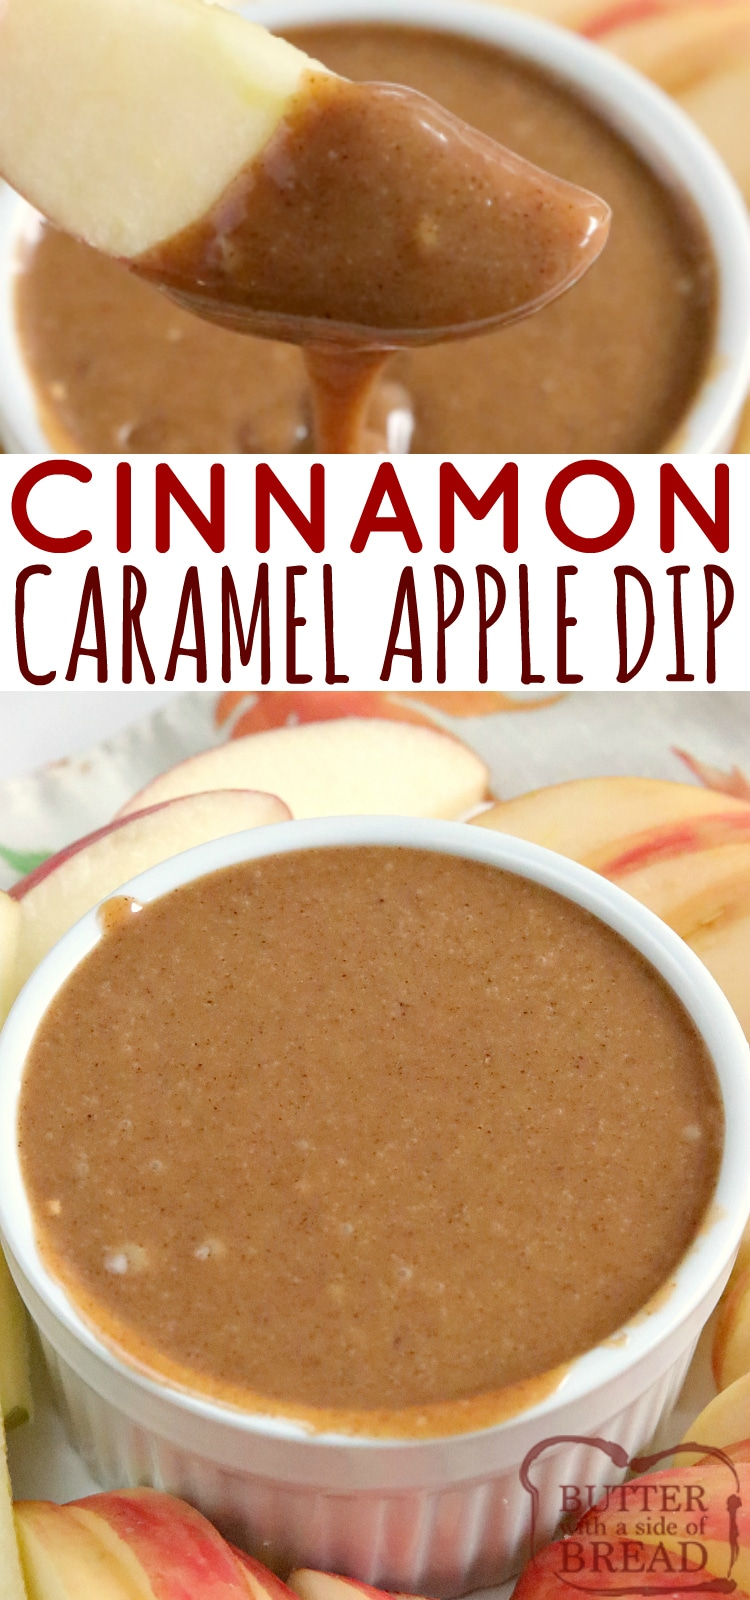 Cinnamon Caramel Apple Dip is made with only 3 ingredients - sweetened condensed milk, butterscotch chips and lots of cinnamon! This easy caramel apple dip recipe is easy and delicious!